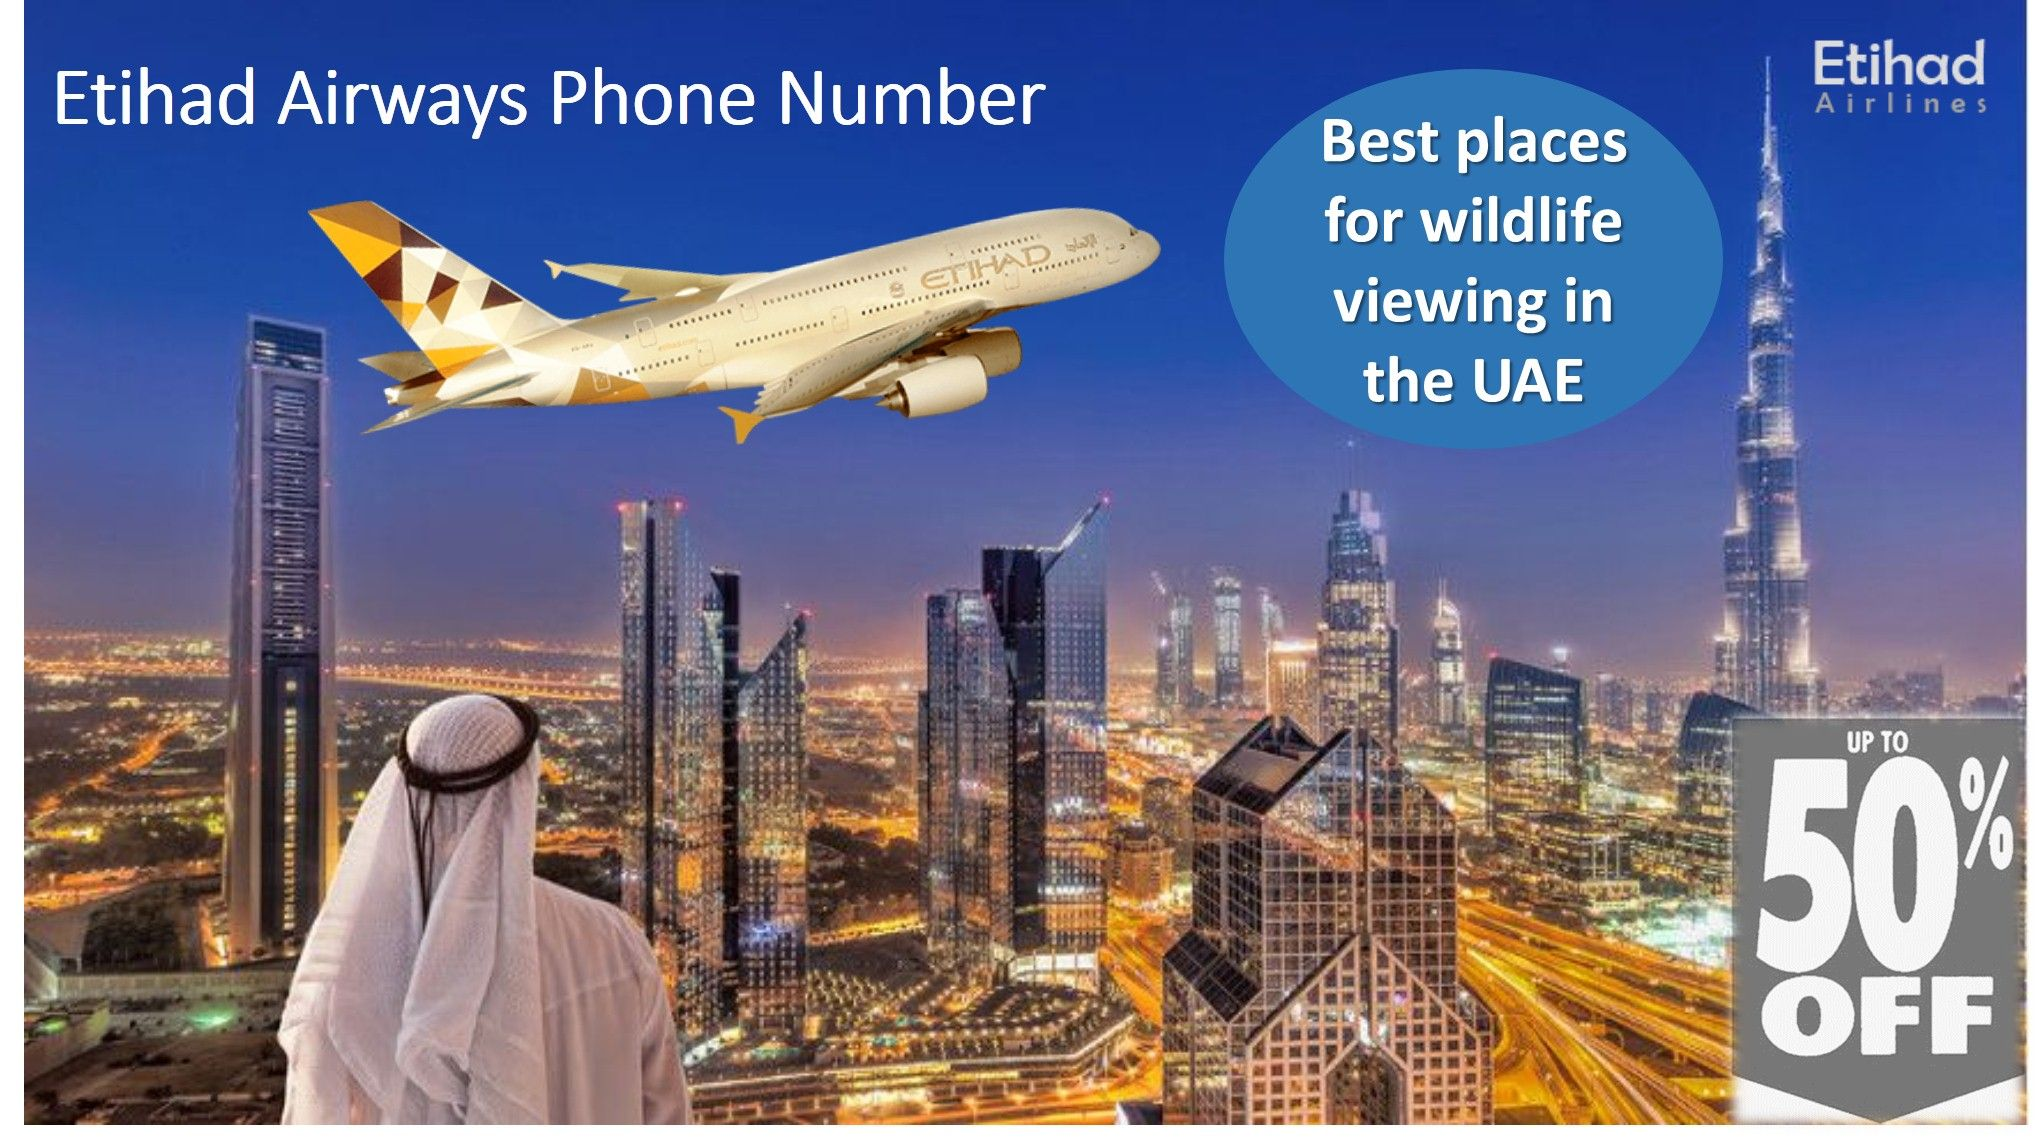 Book flight ticket with low fare call us at etihad airways